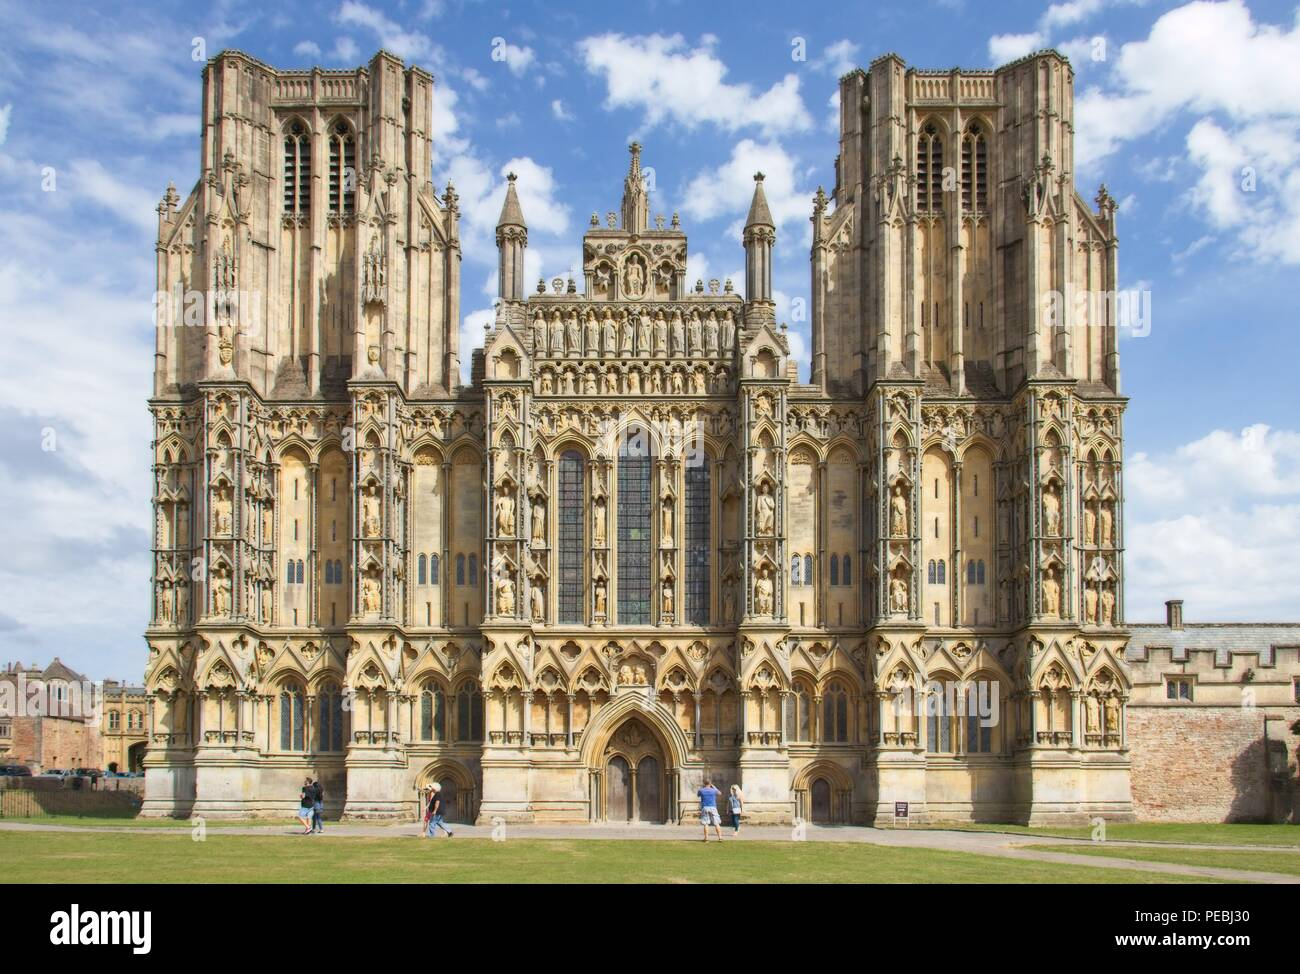 Wells Cathedral, West Front, Blue sky with fluffy clouds. - Stock Image